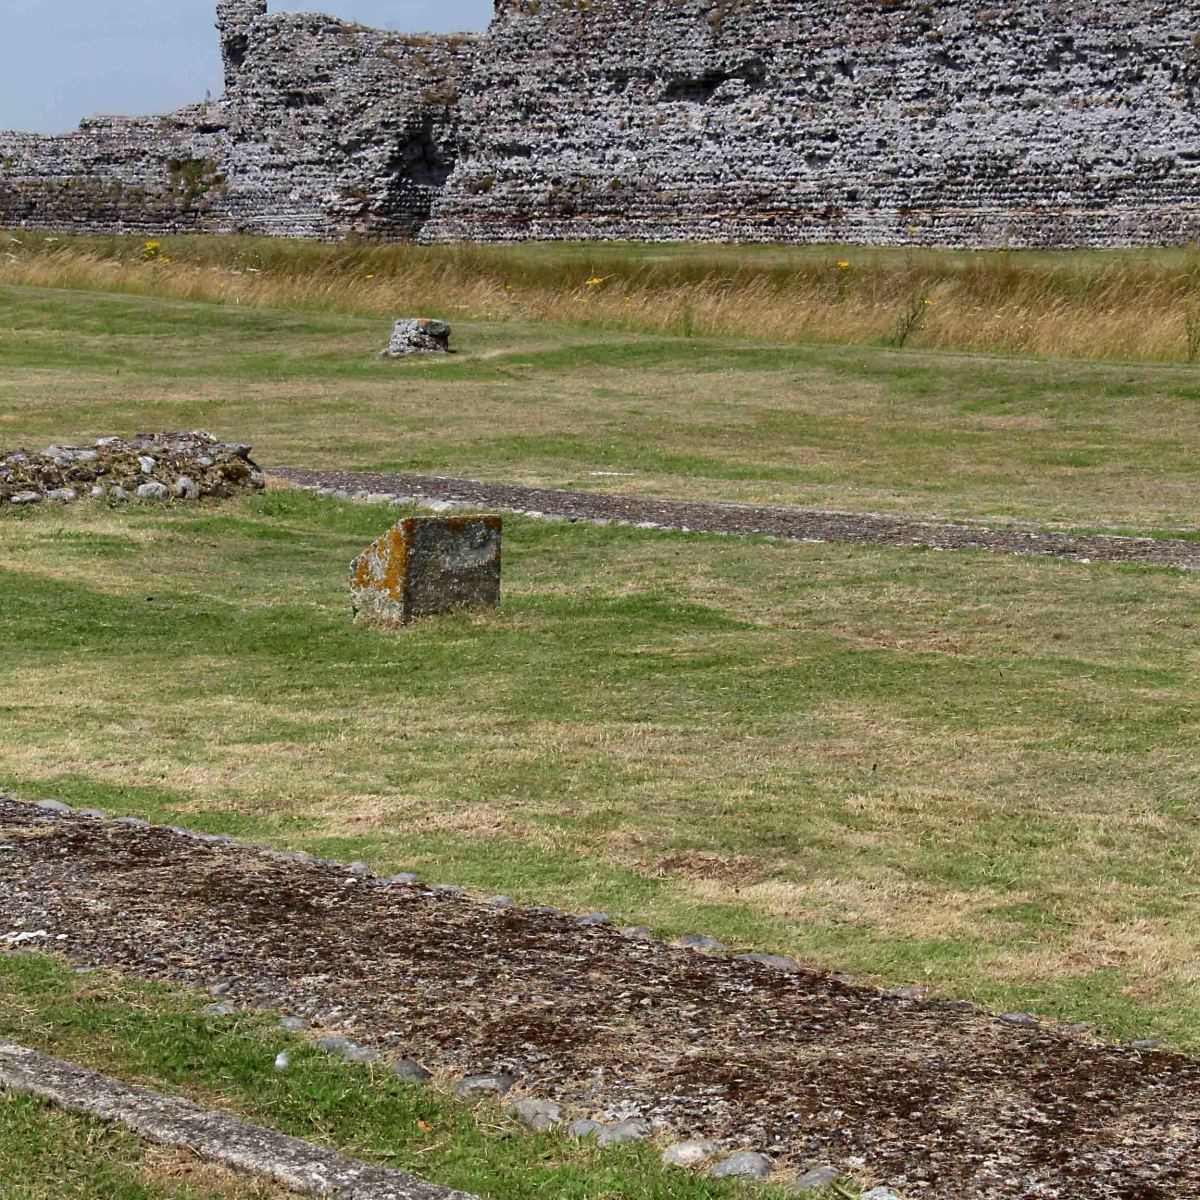 All that remains of the 12th century chapel at Richborough are these foundations and some concrete markers in the foreground. The north wall of the Roman fort stands in the background beyond a trench